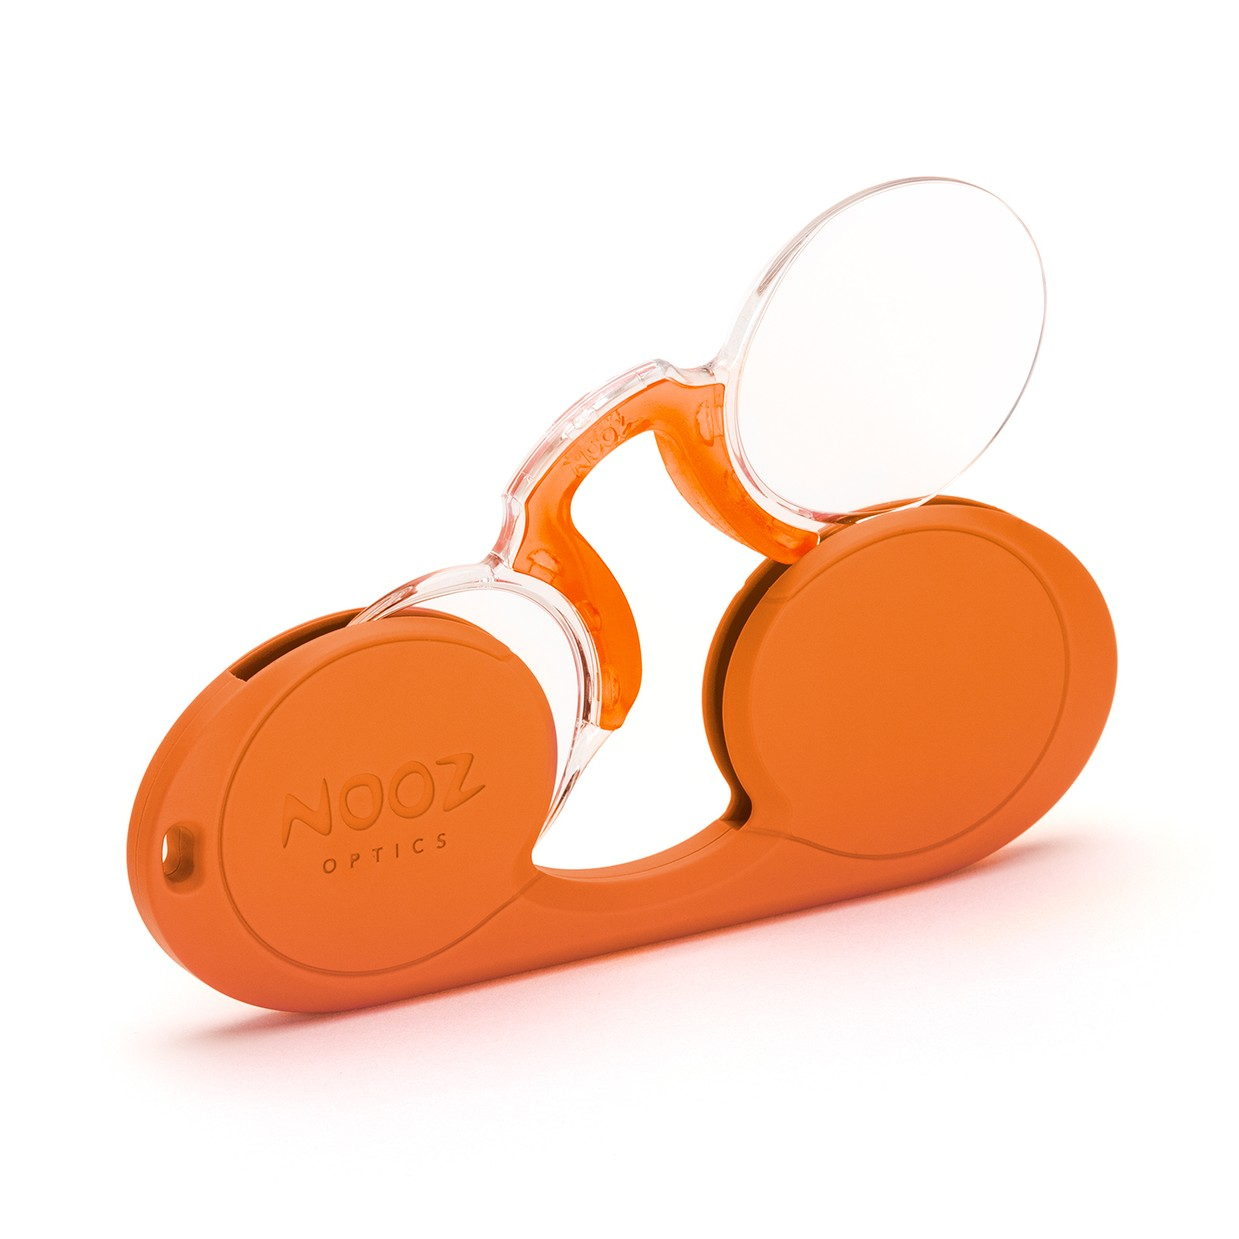 Leesbril Nooz Optics oranje 8